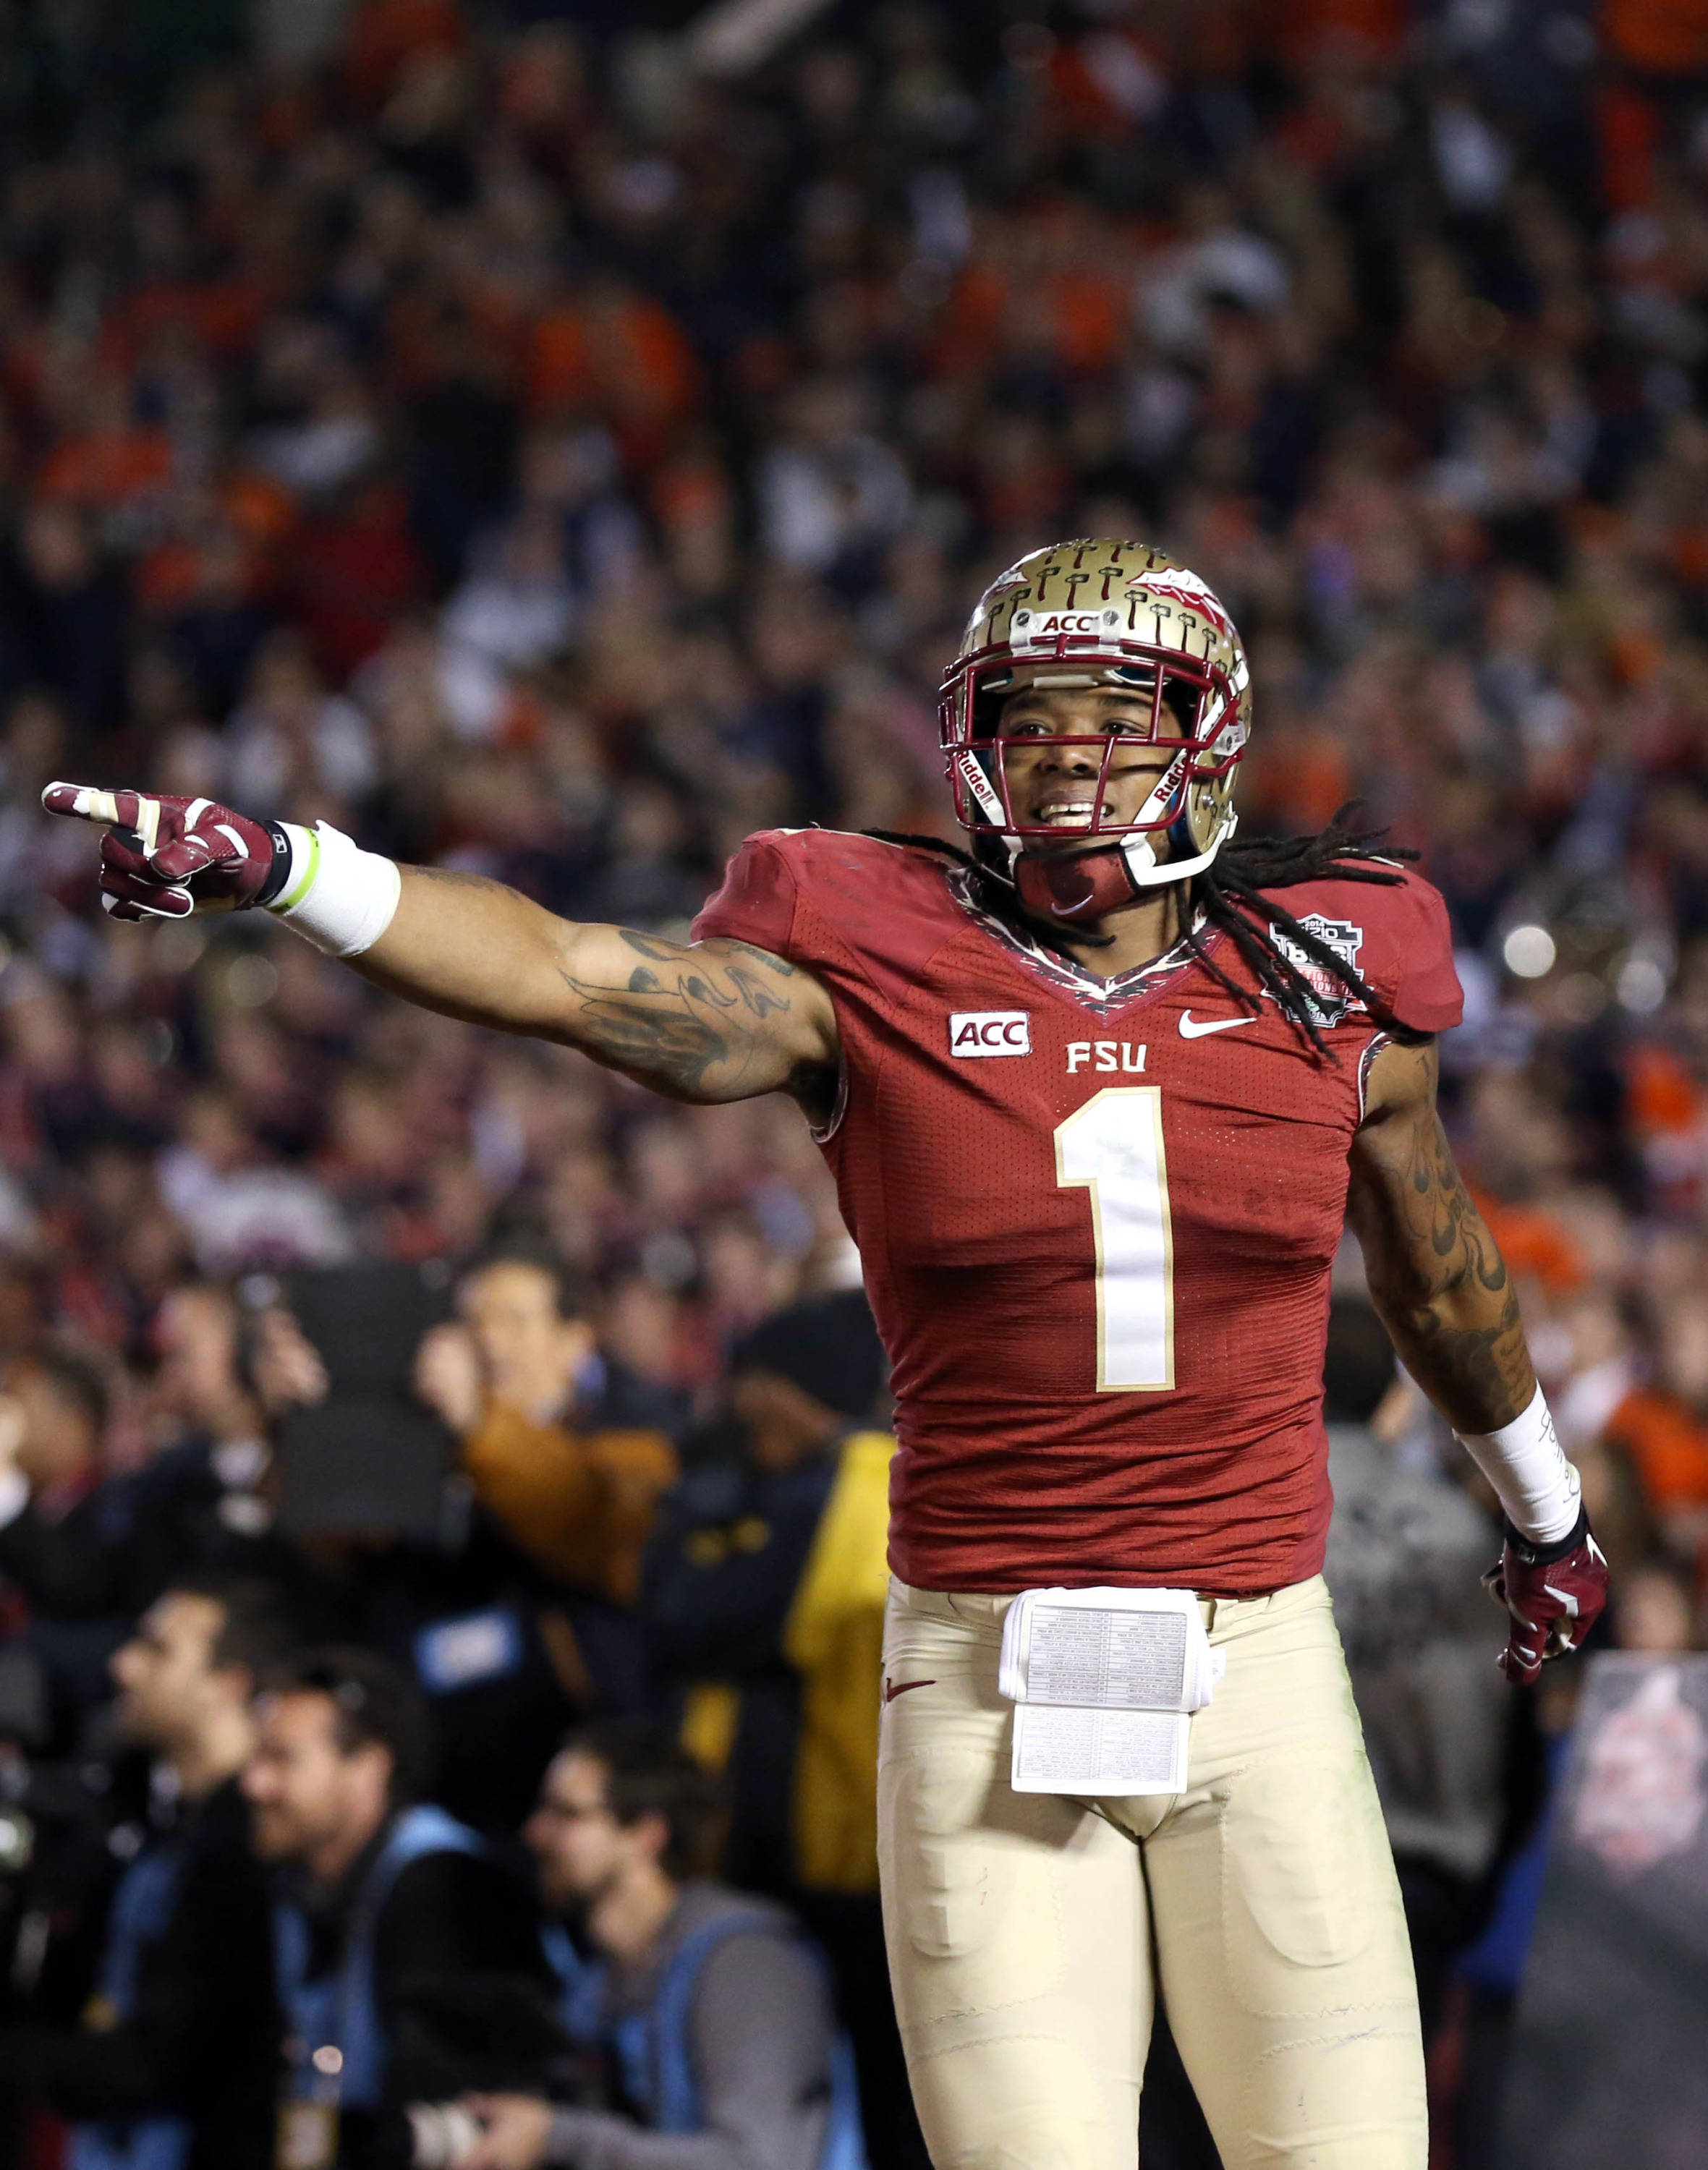 Jan 6, 2014; Pasadena, CA, USA; Florida State Seminoles wide receiver Kelvin Benjamin (1) celebrates his winning touchdown catch against the Auburn Tigers during the second half of the 2014 BCS National Championship game at the Rose Bowl.  Mandatory Credit: Matthew Emmons-USA TODAY Sports